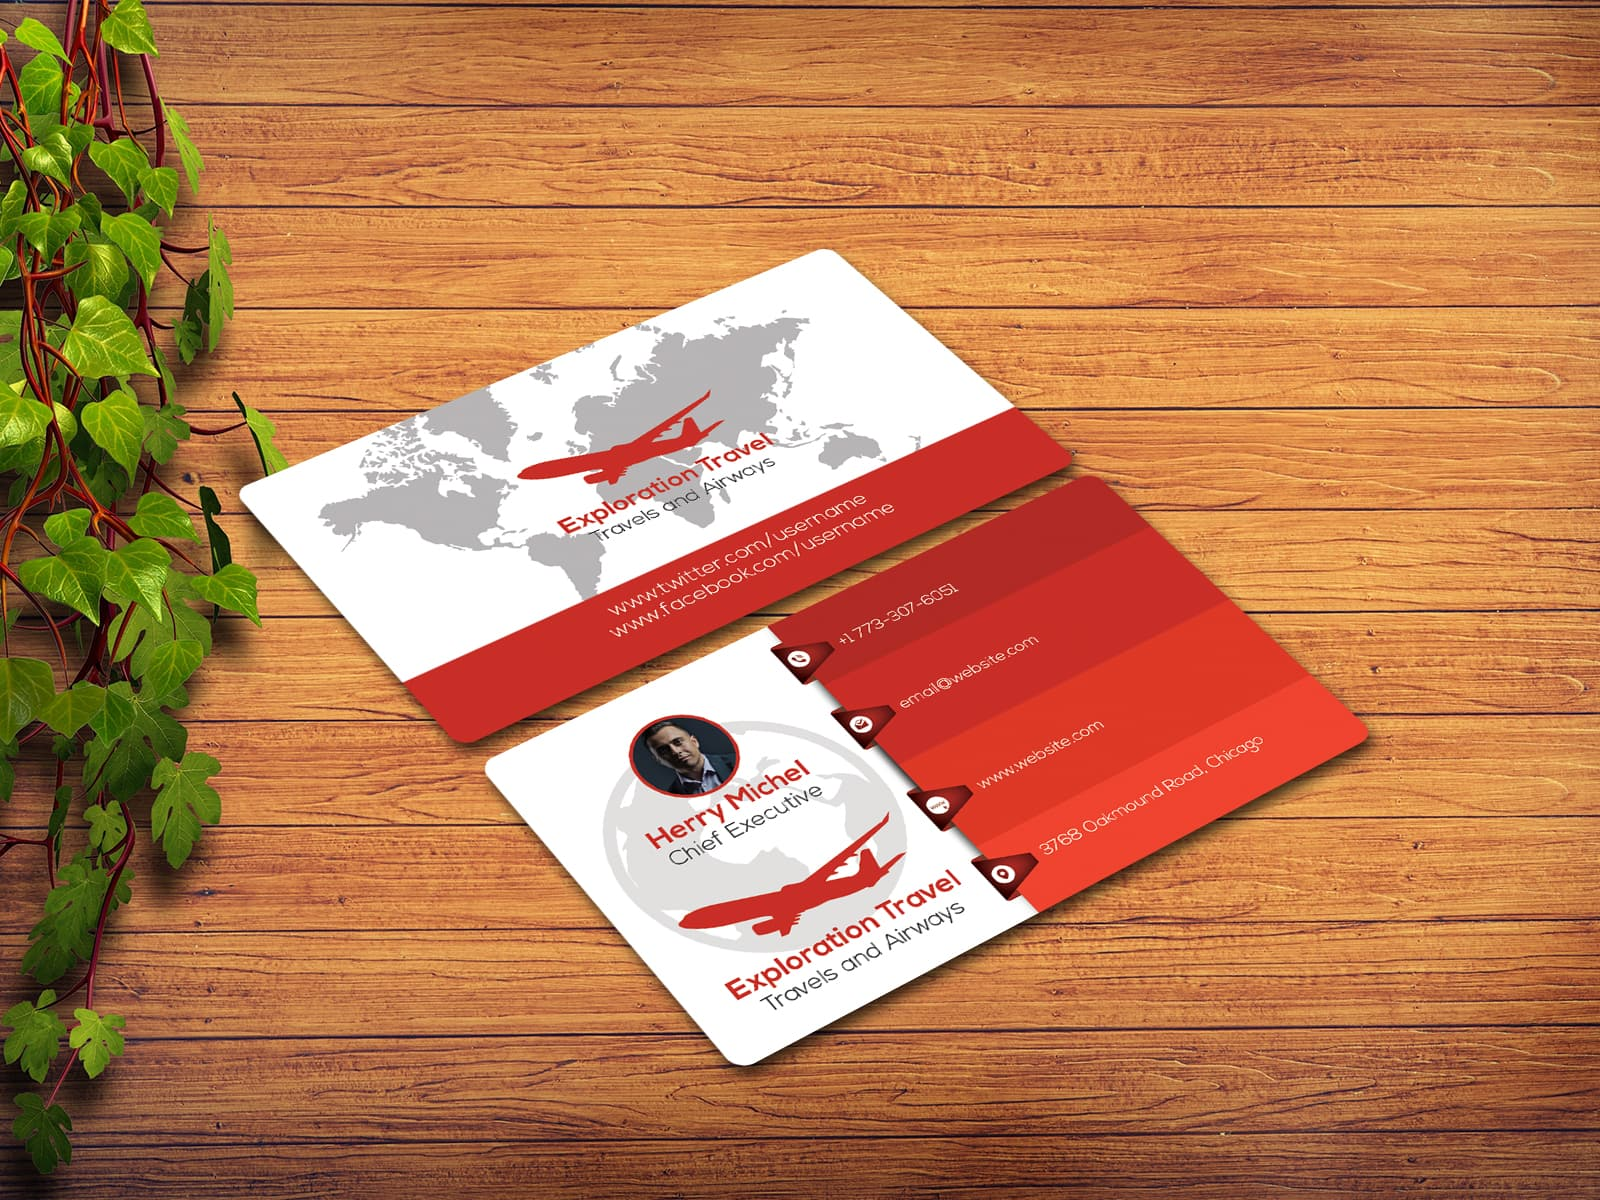 Exploration Travel Agency Business Card